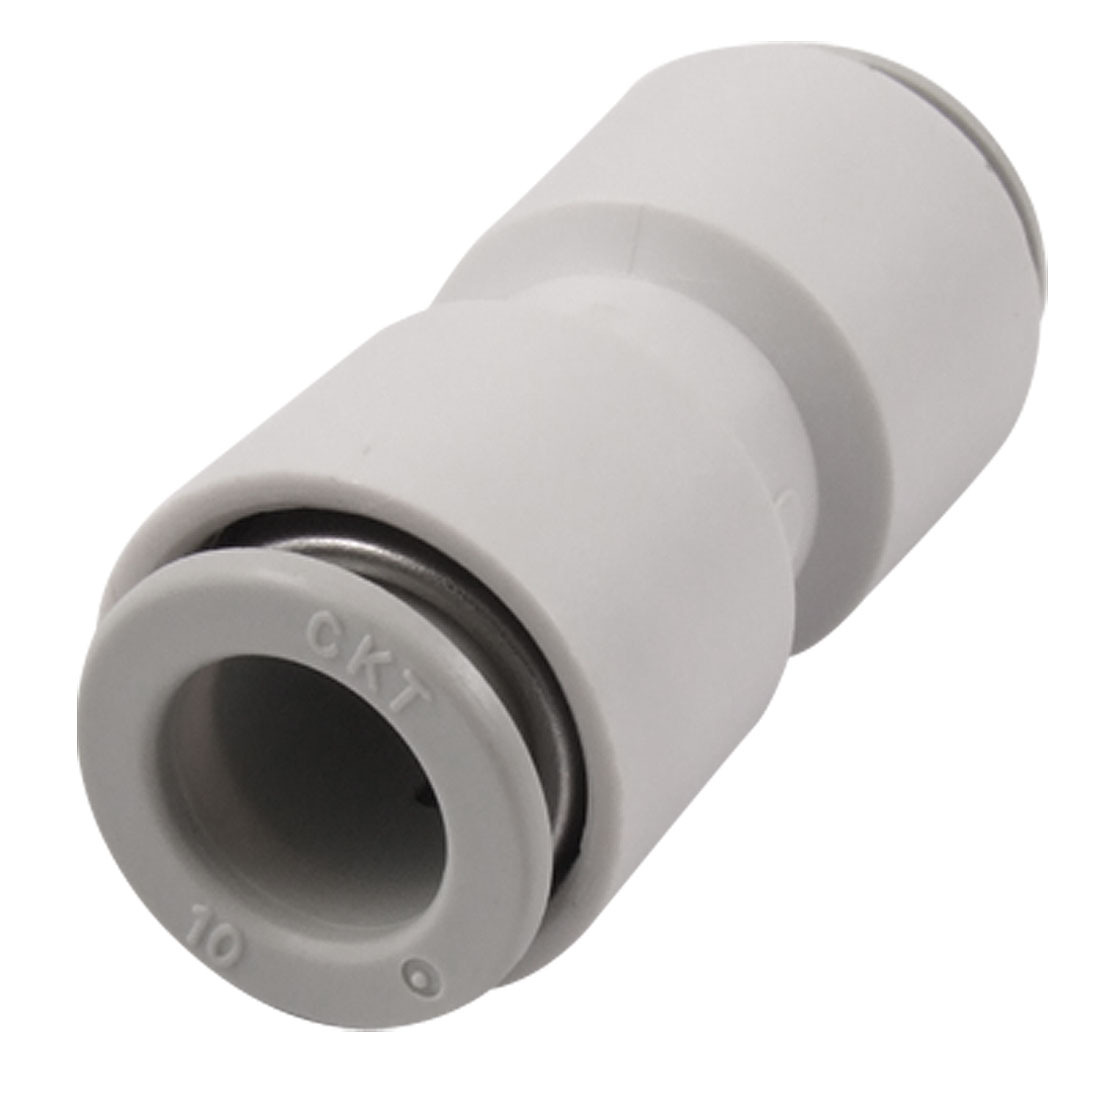 10mm Pneumatic Air Tube One Touch Push In Fitting Straight Quick Connector